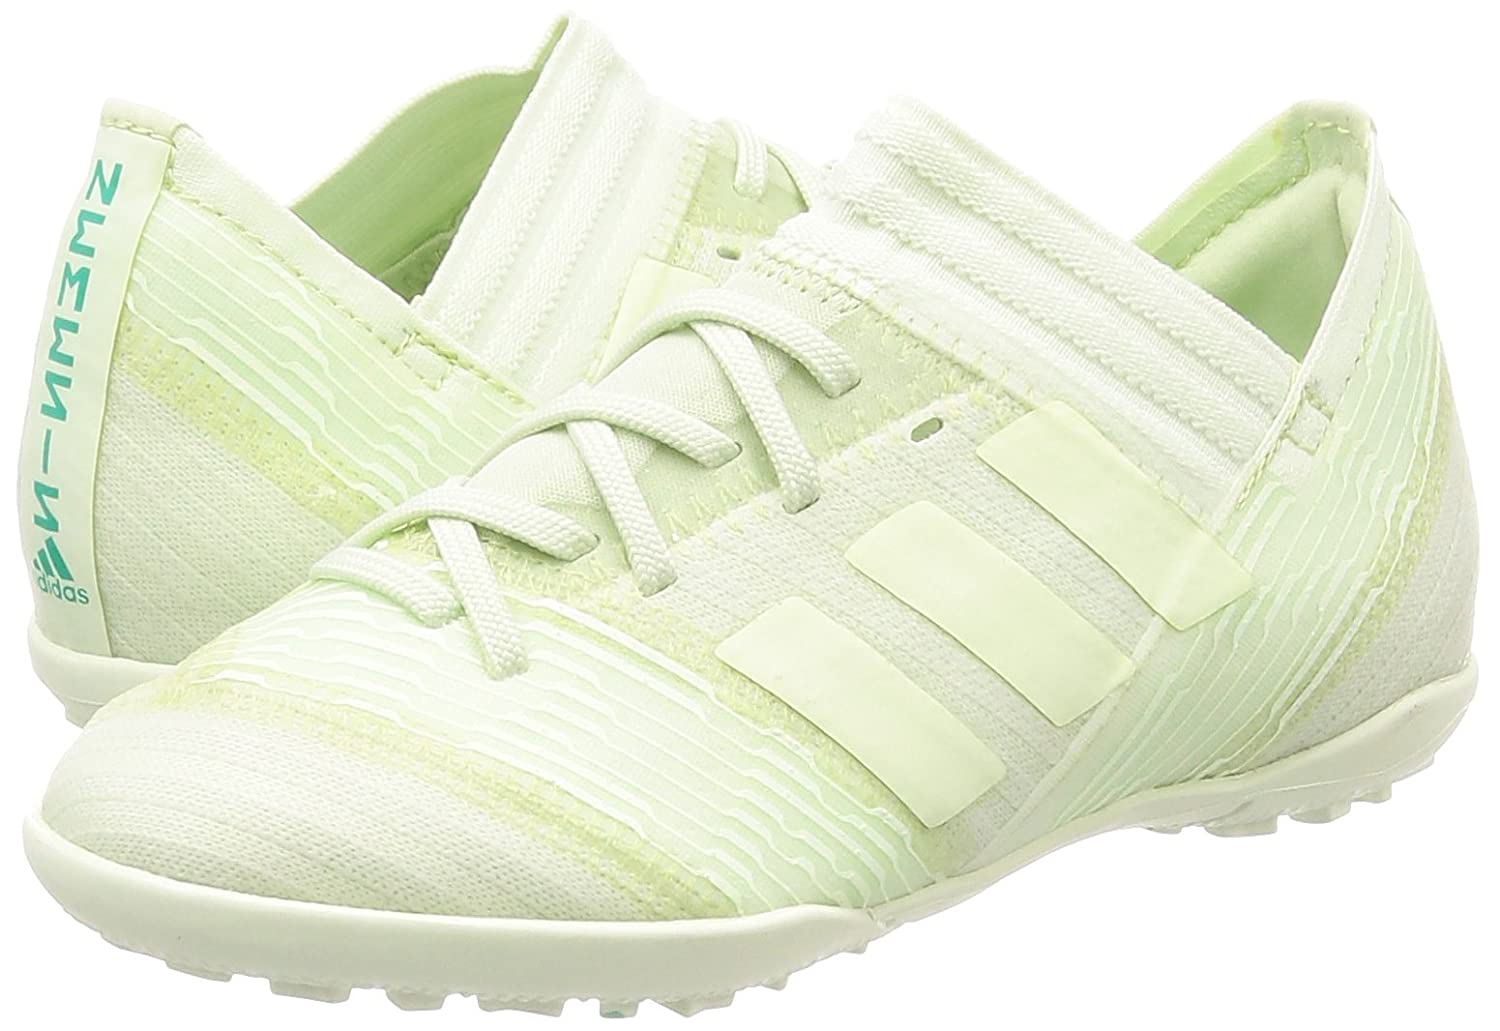 ca7576d0f2be adidas Chaussures Nemeziz Tango 17.3 TF  Amazon.co.uk  Sports   Outdoors